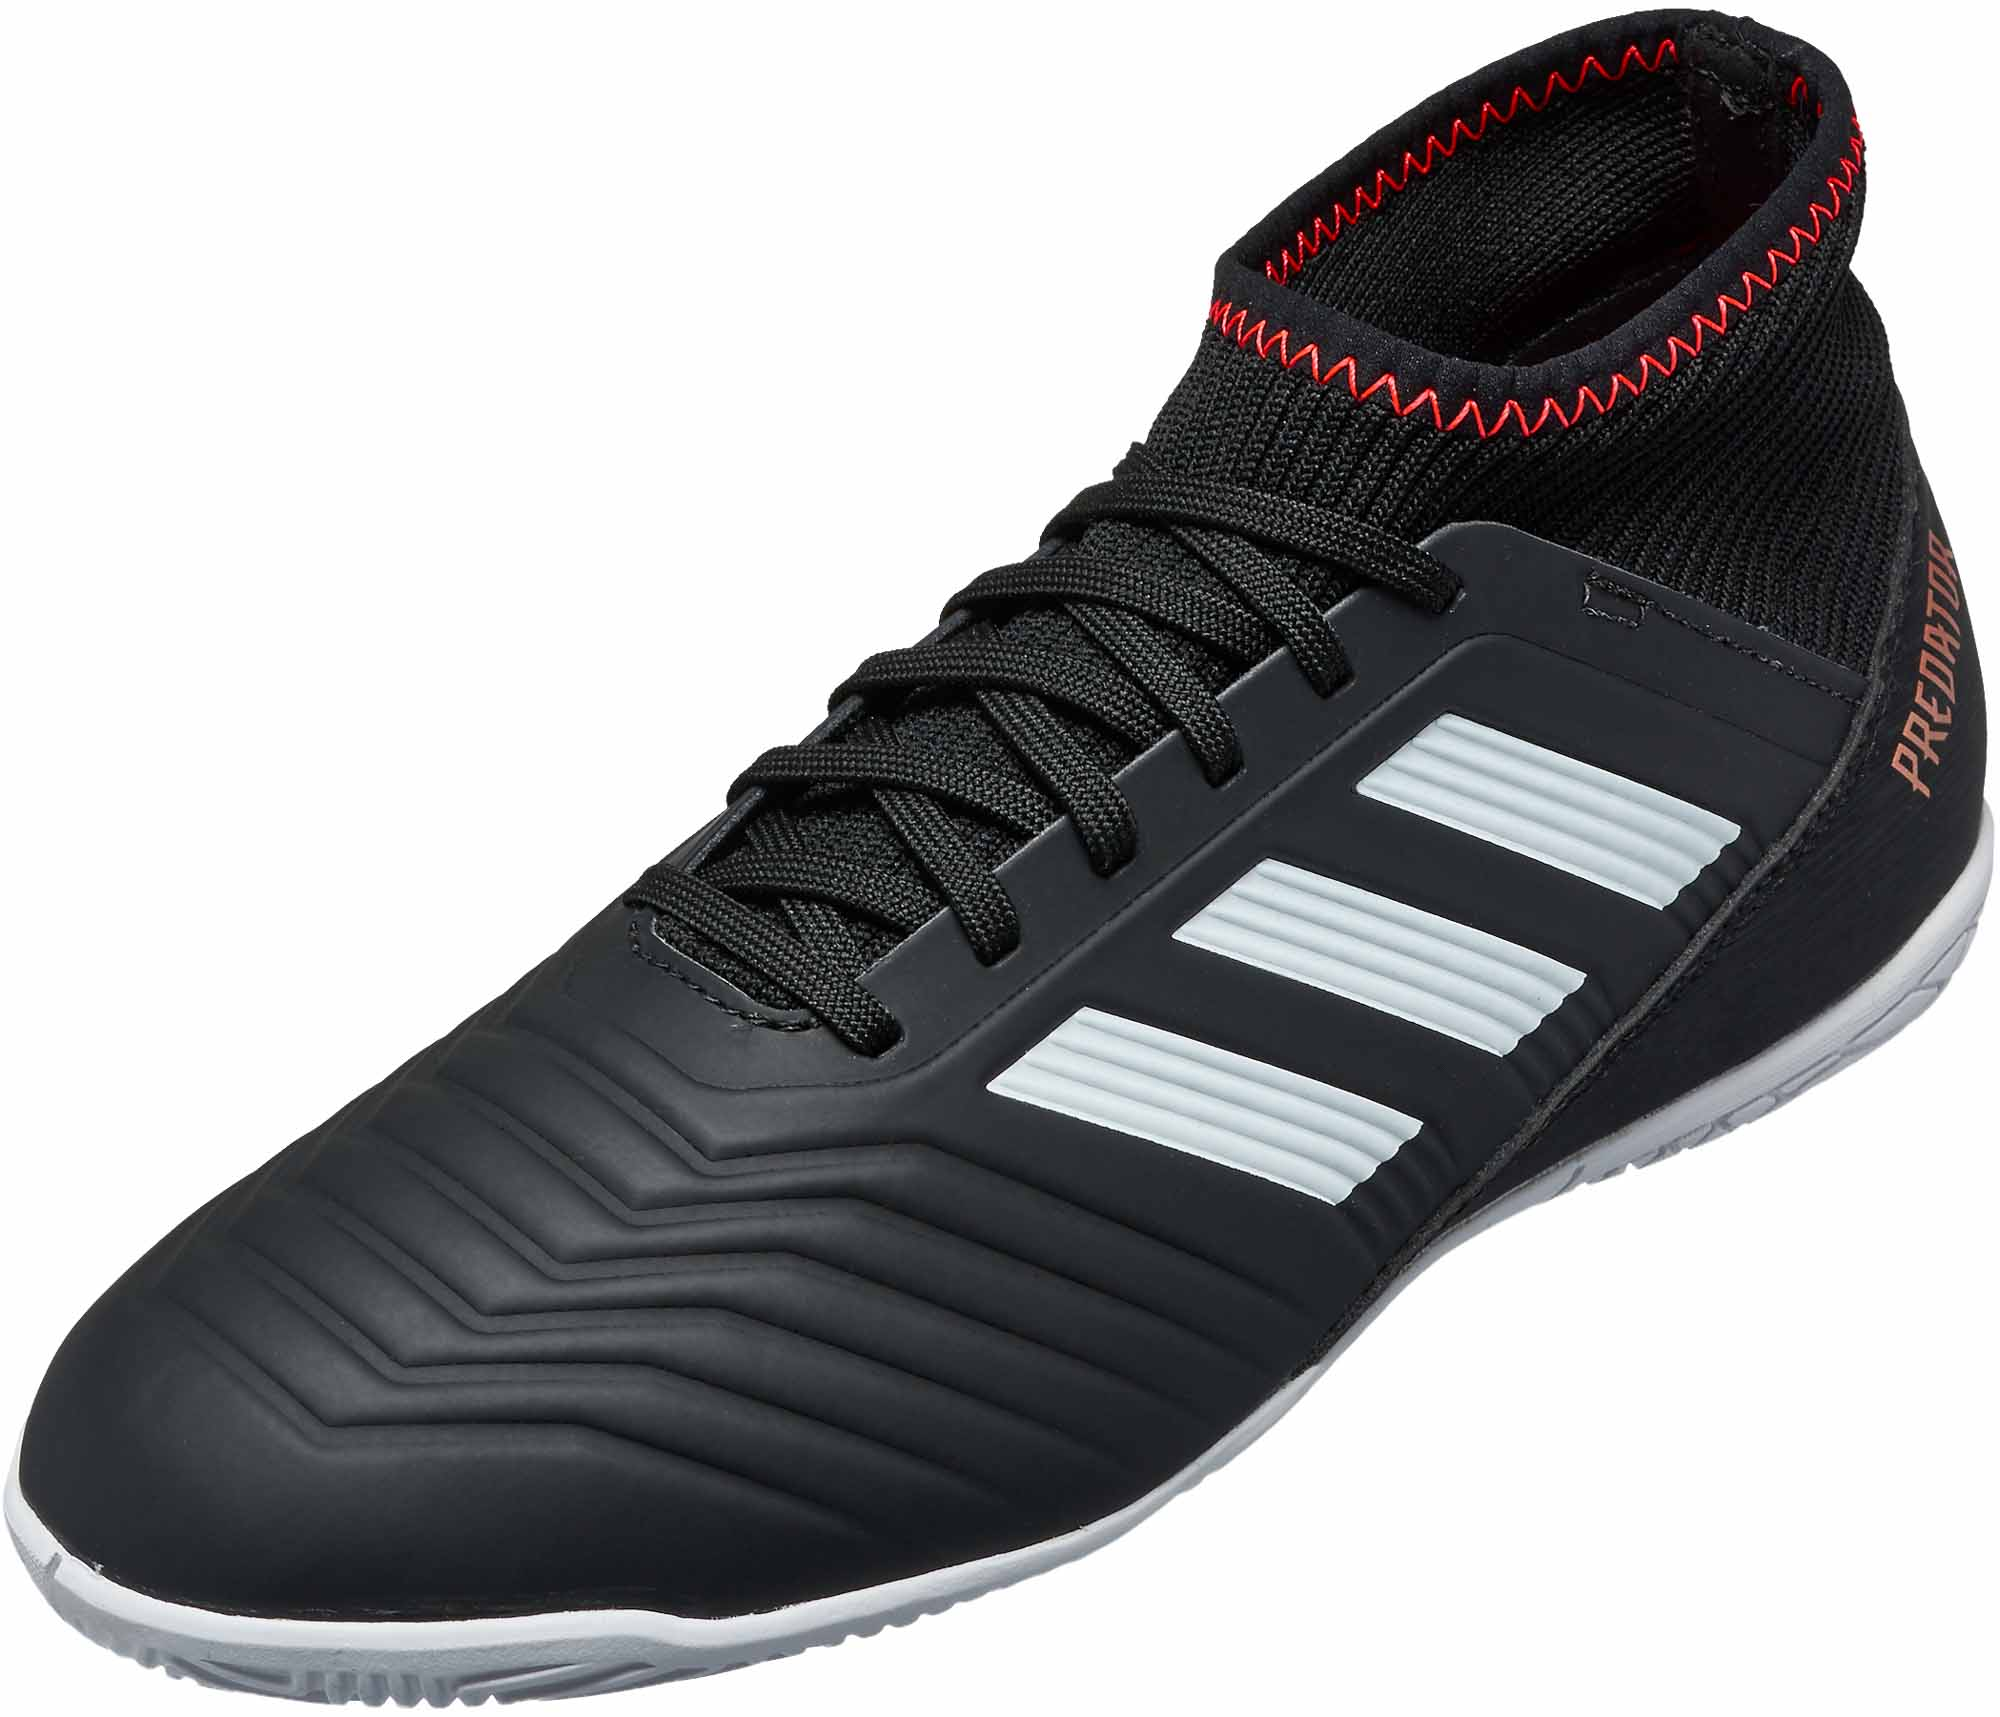 Black Soccer Referee Shoes